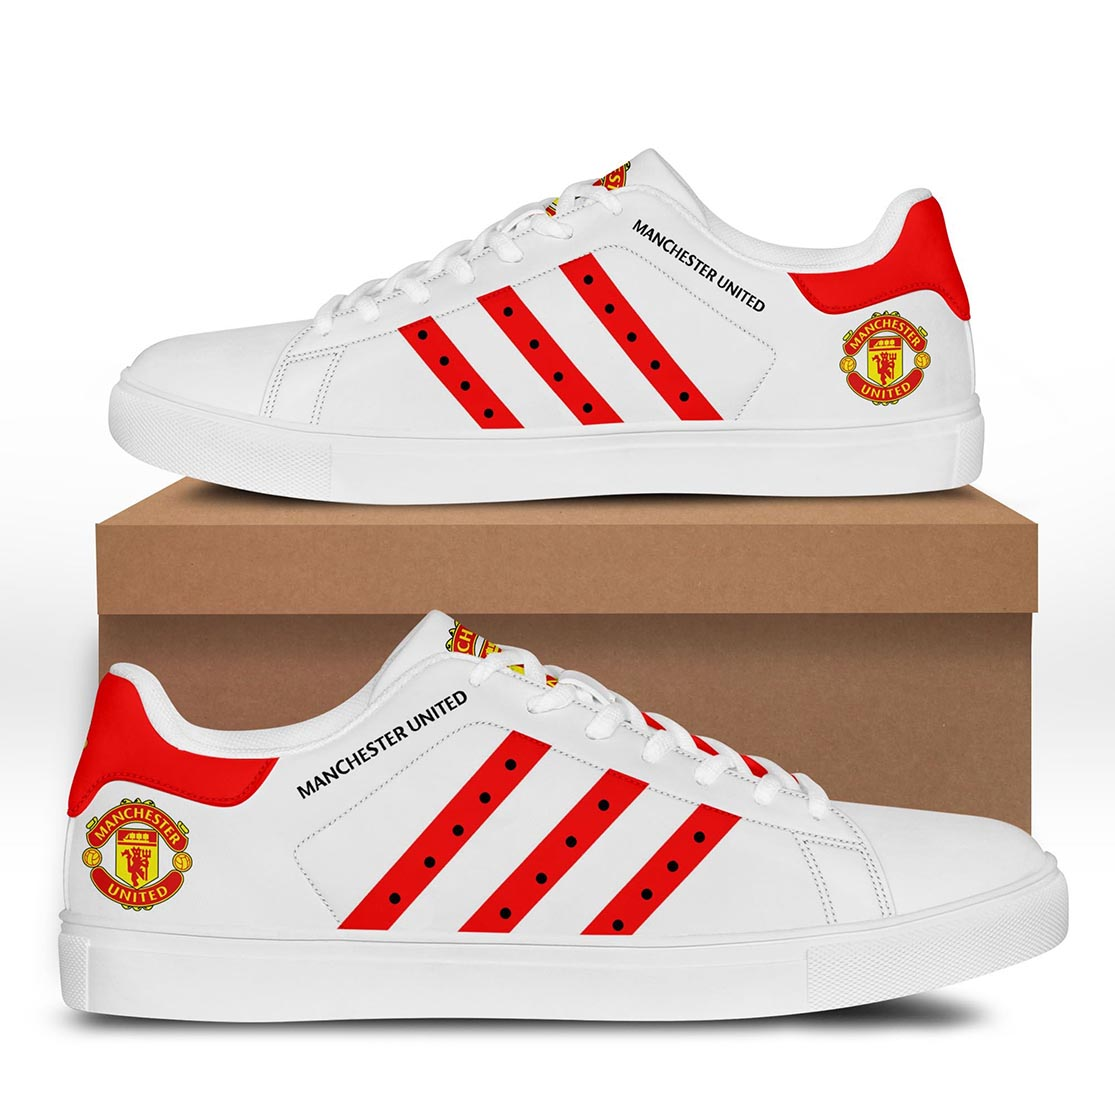 Manchester United stan smith shoes - Picture 3